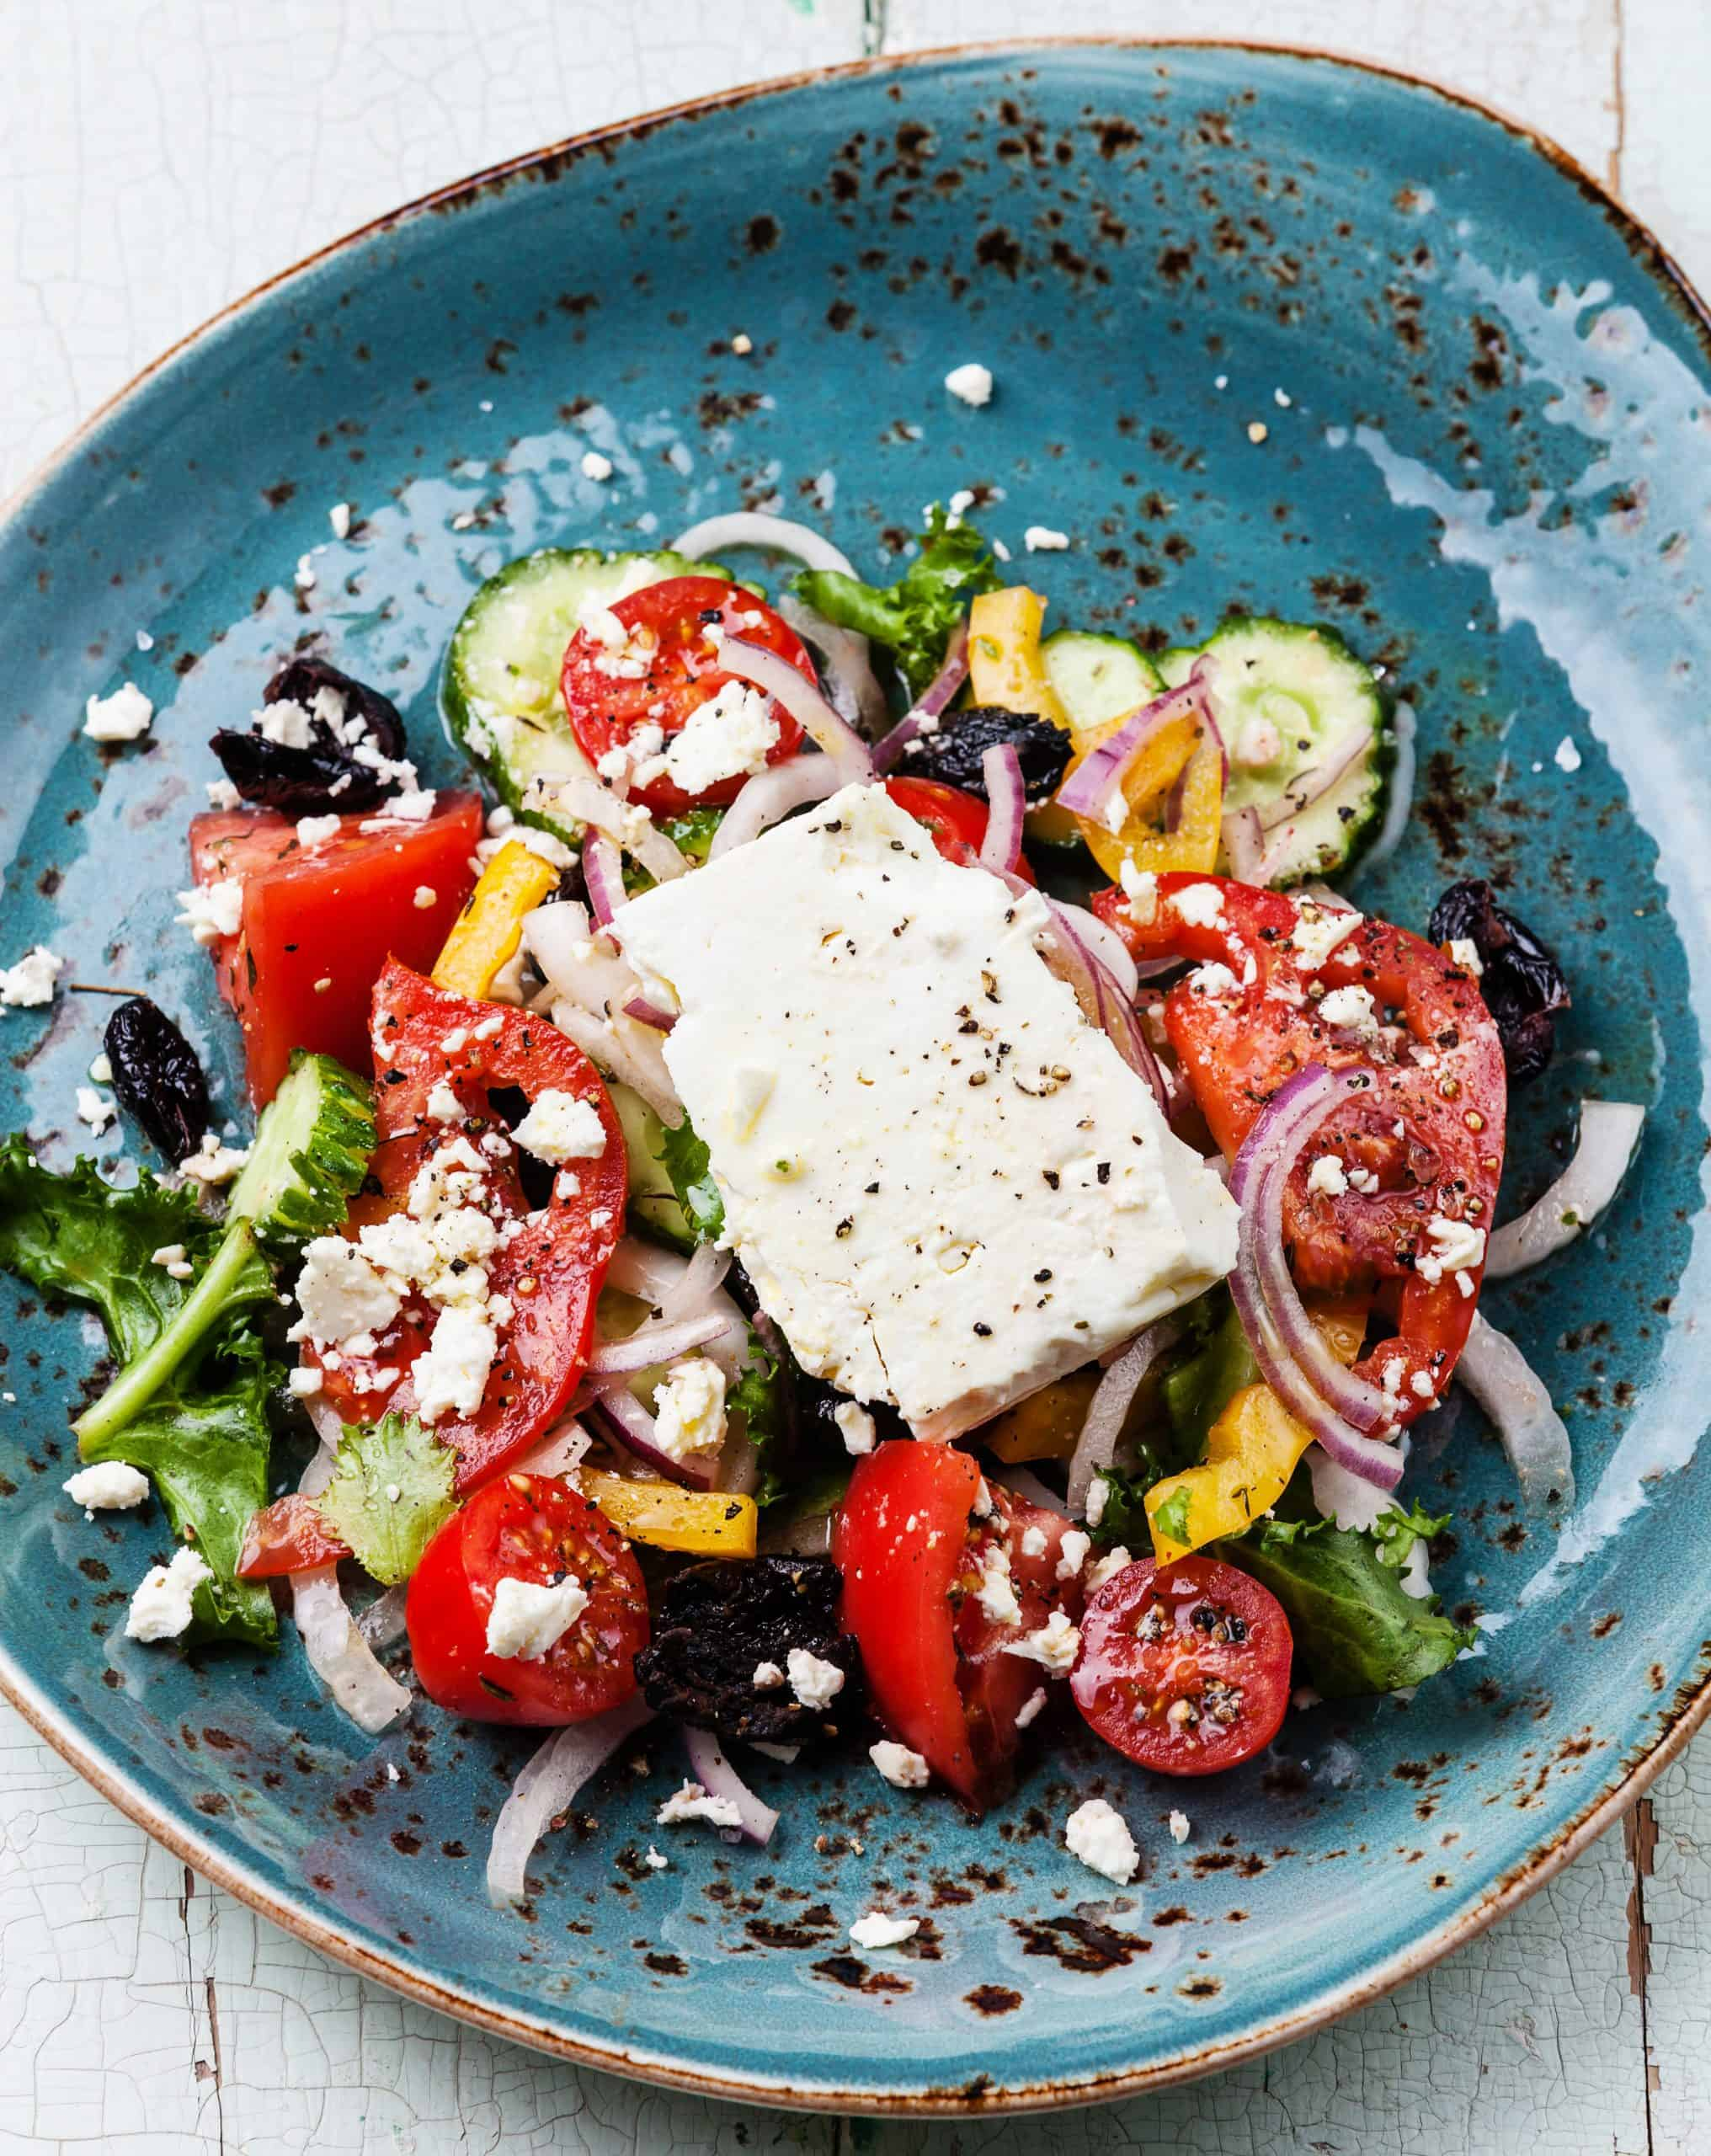 Salad with feta cheese, tomatoes, red onions, black olives on a blue plate.